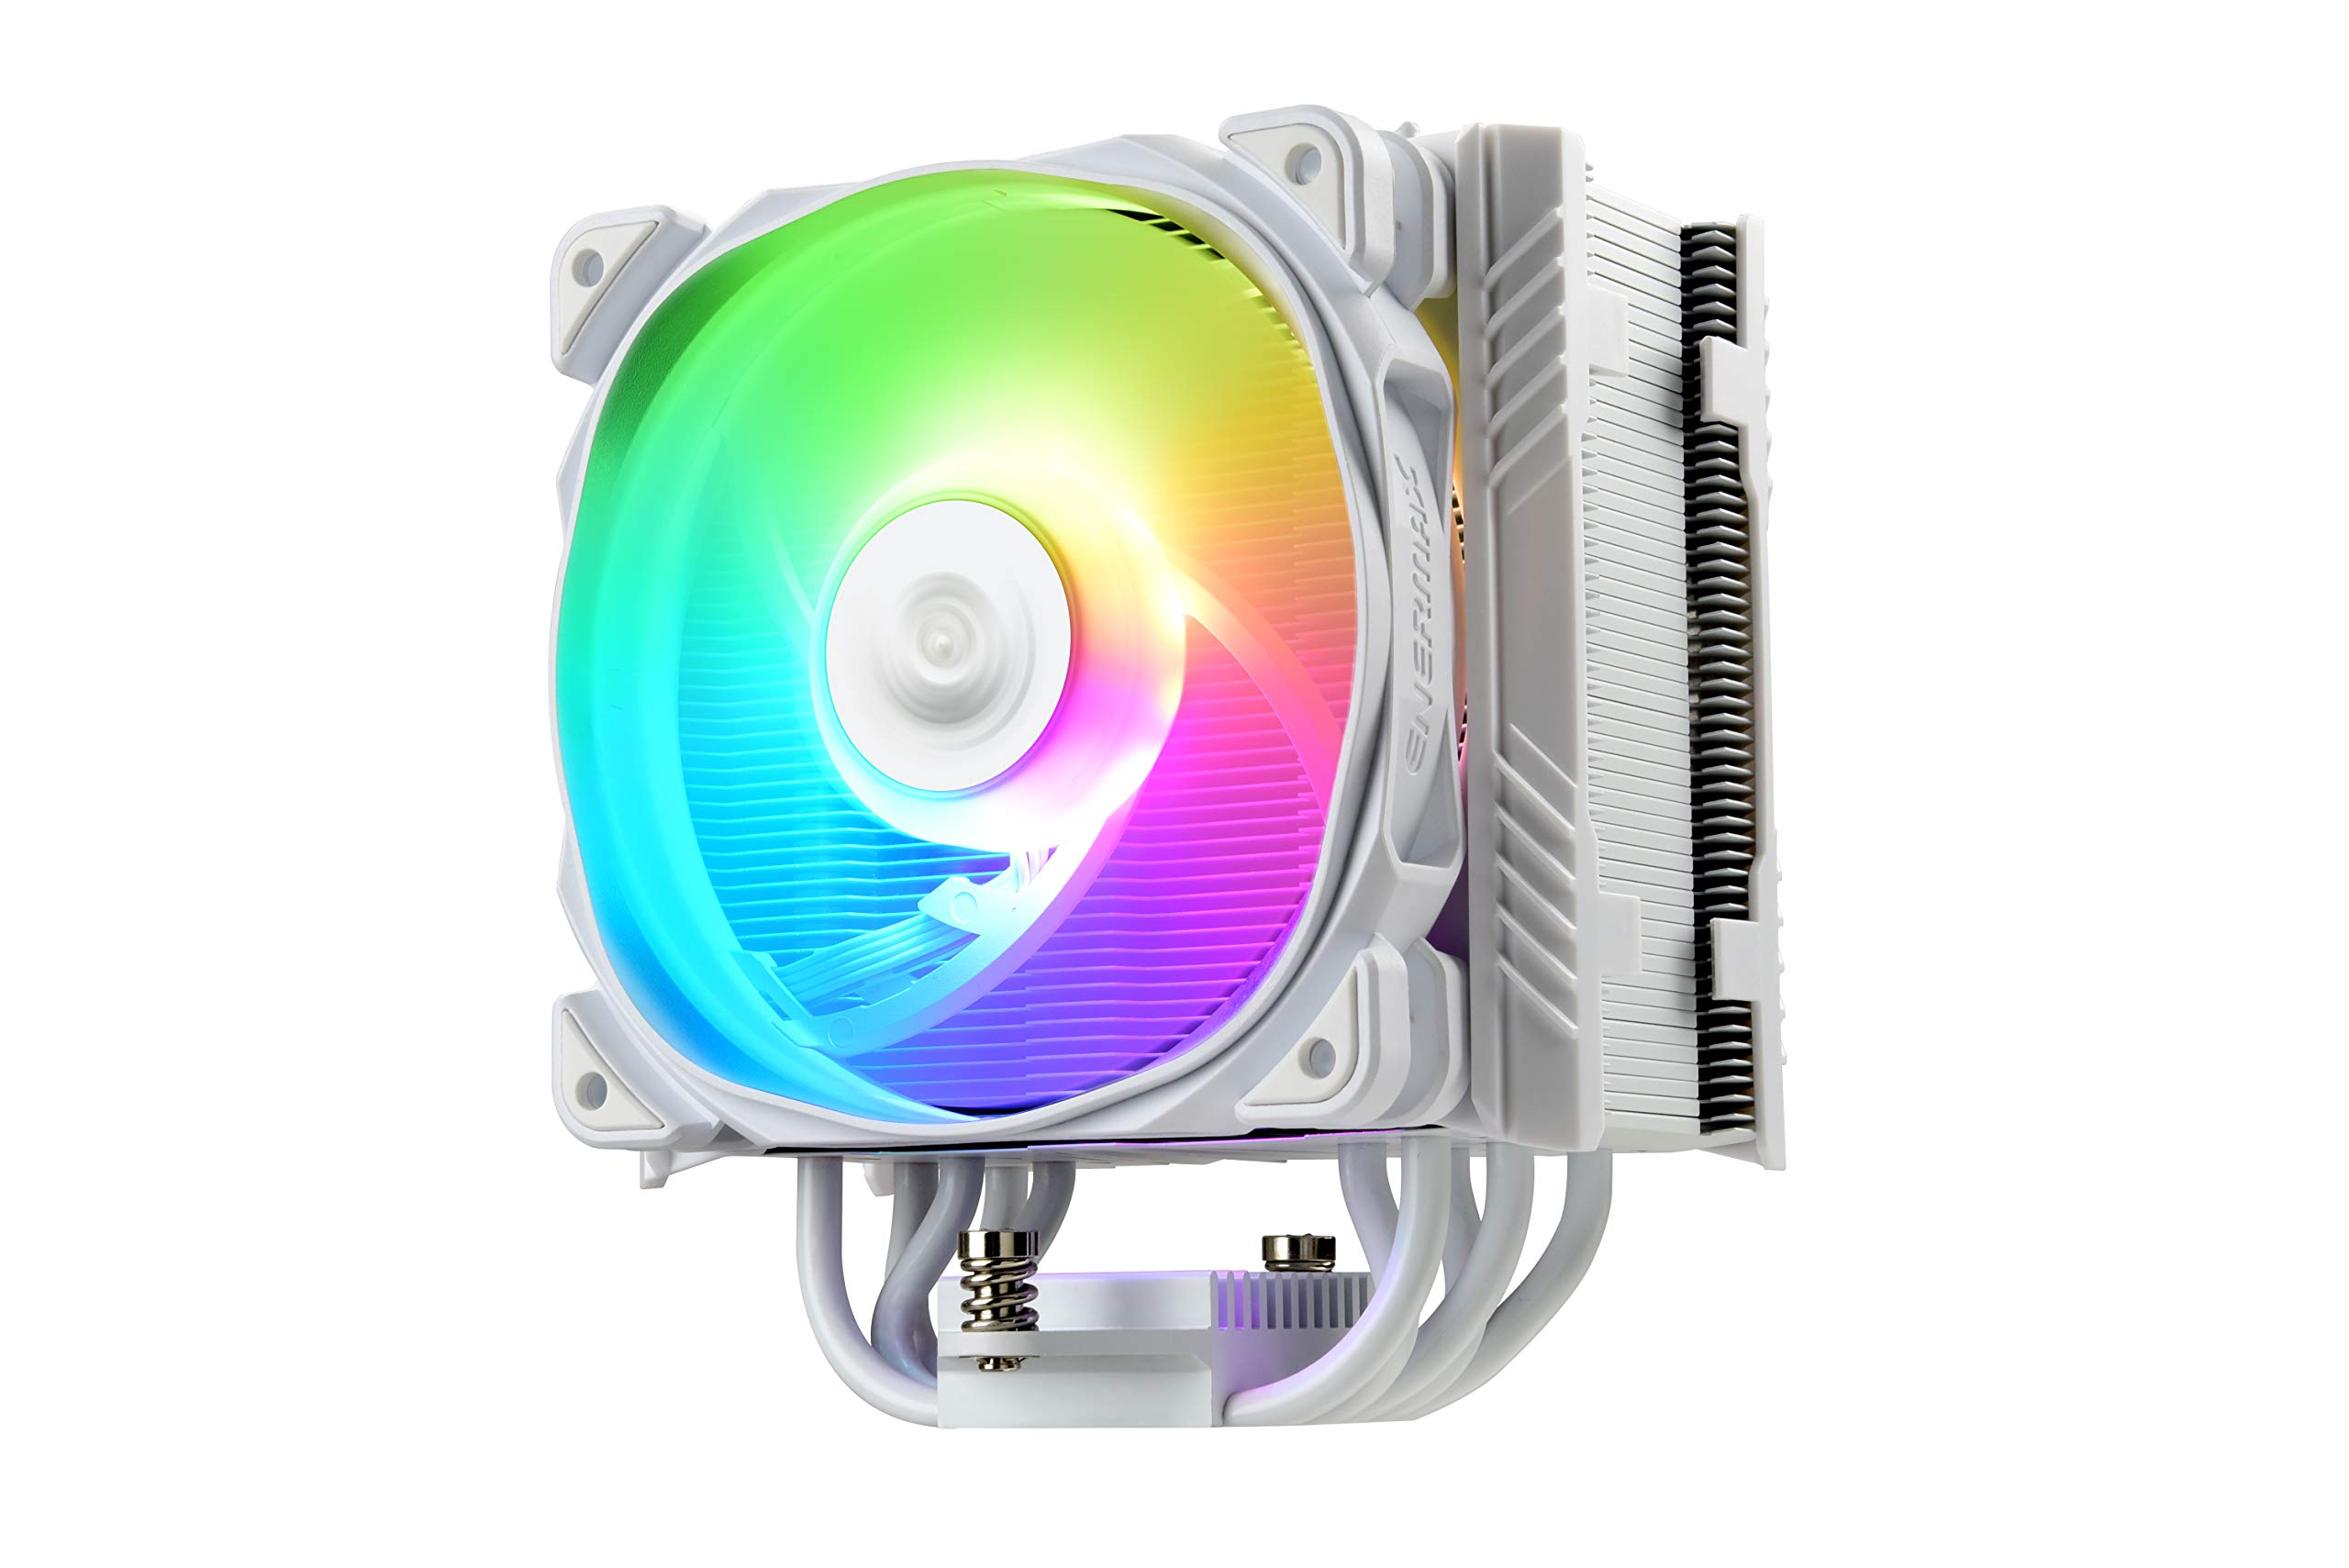 Enermax ETS-T50 Axe Addressable RGB CPU Air Cooler 230W+ TDP for Intel/AMD Univeral Socket 5 Direct Contact Heat Pipes 120mm PWM Fan White: ETS-T50A-W-ARGB by Enermax